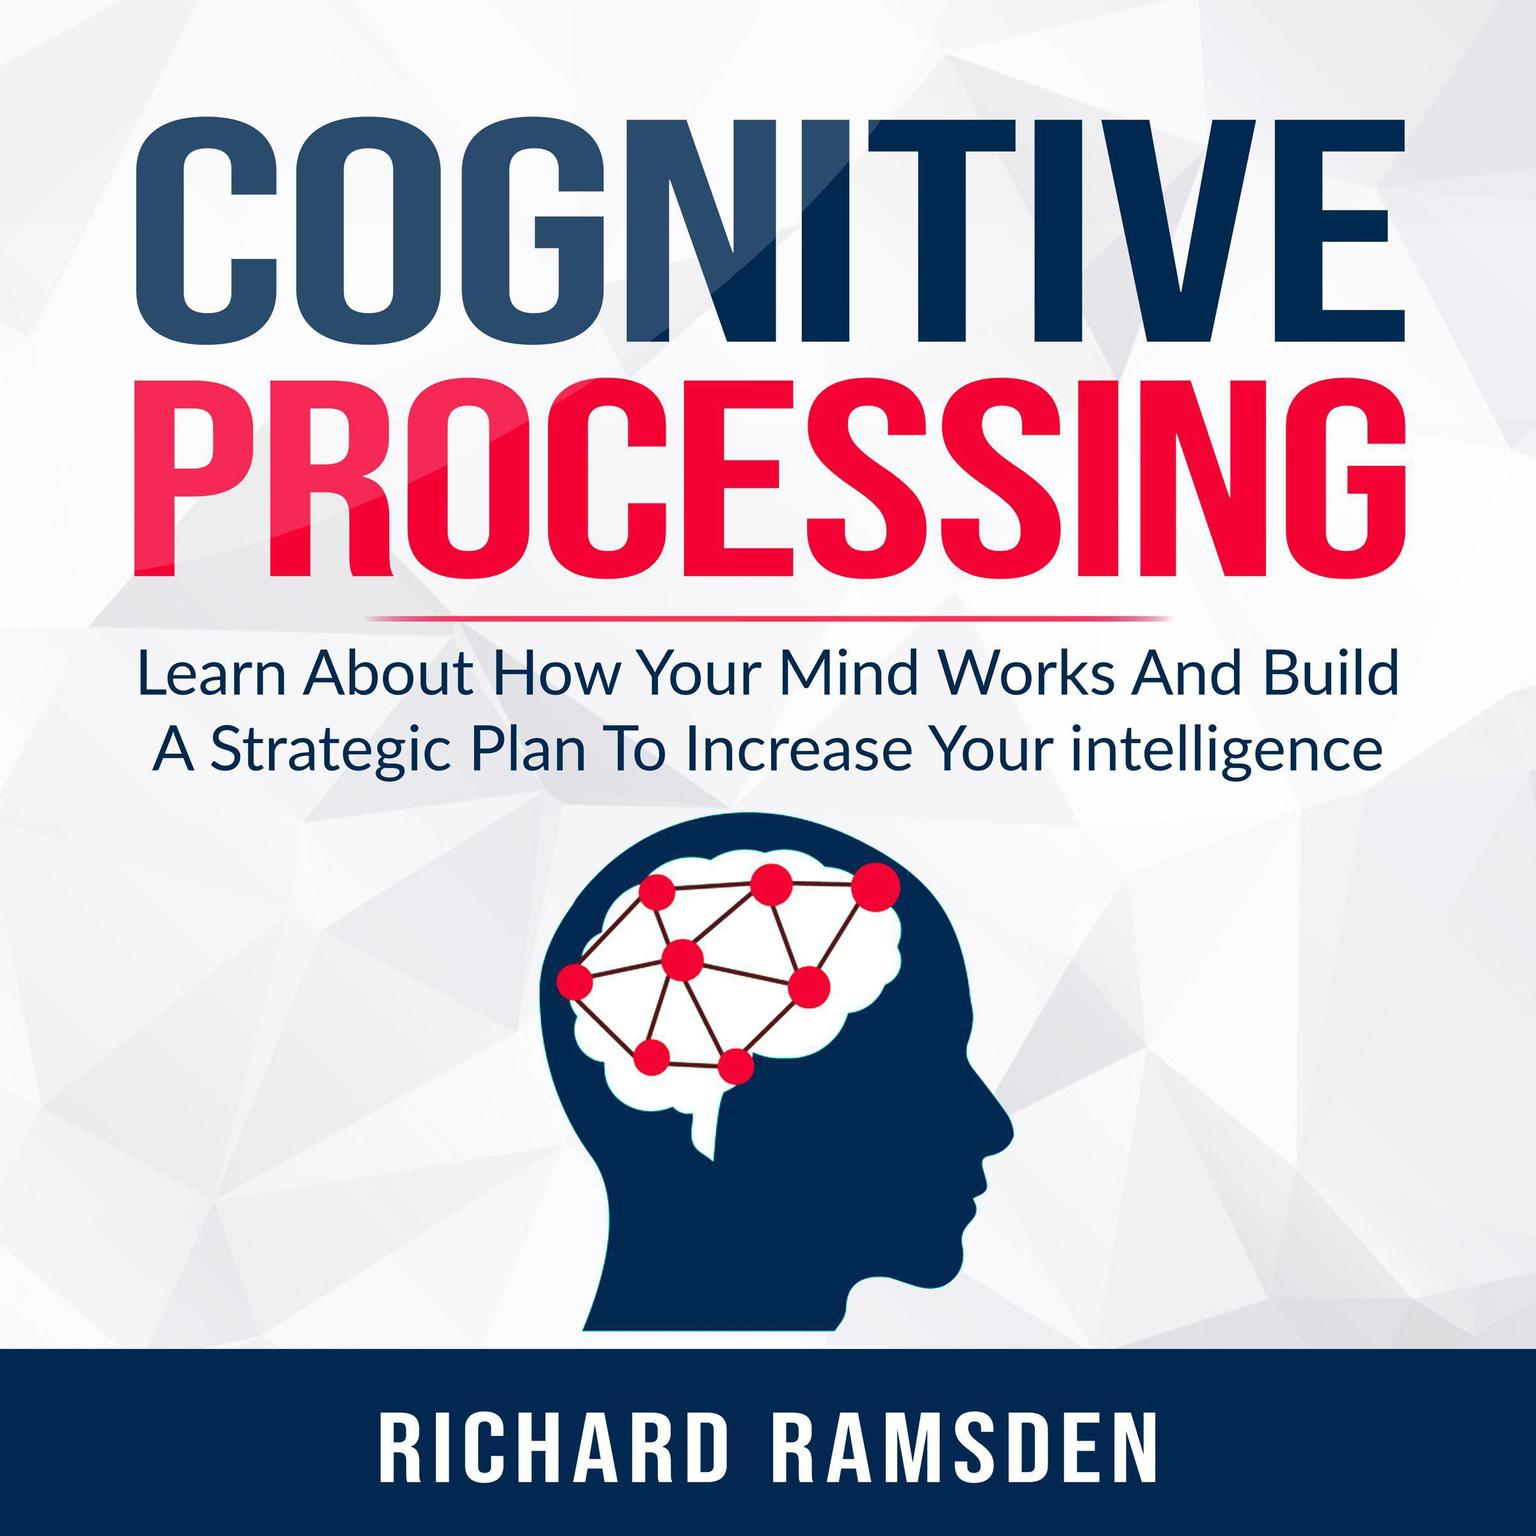 Cognitive Processing -  Learn About How Your Mind Works And Build A Strategic Plan To Increase Your intelligence Audiobook, by Richard Ramsden